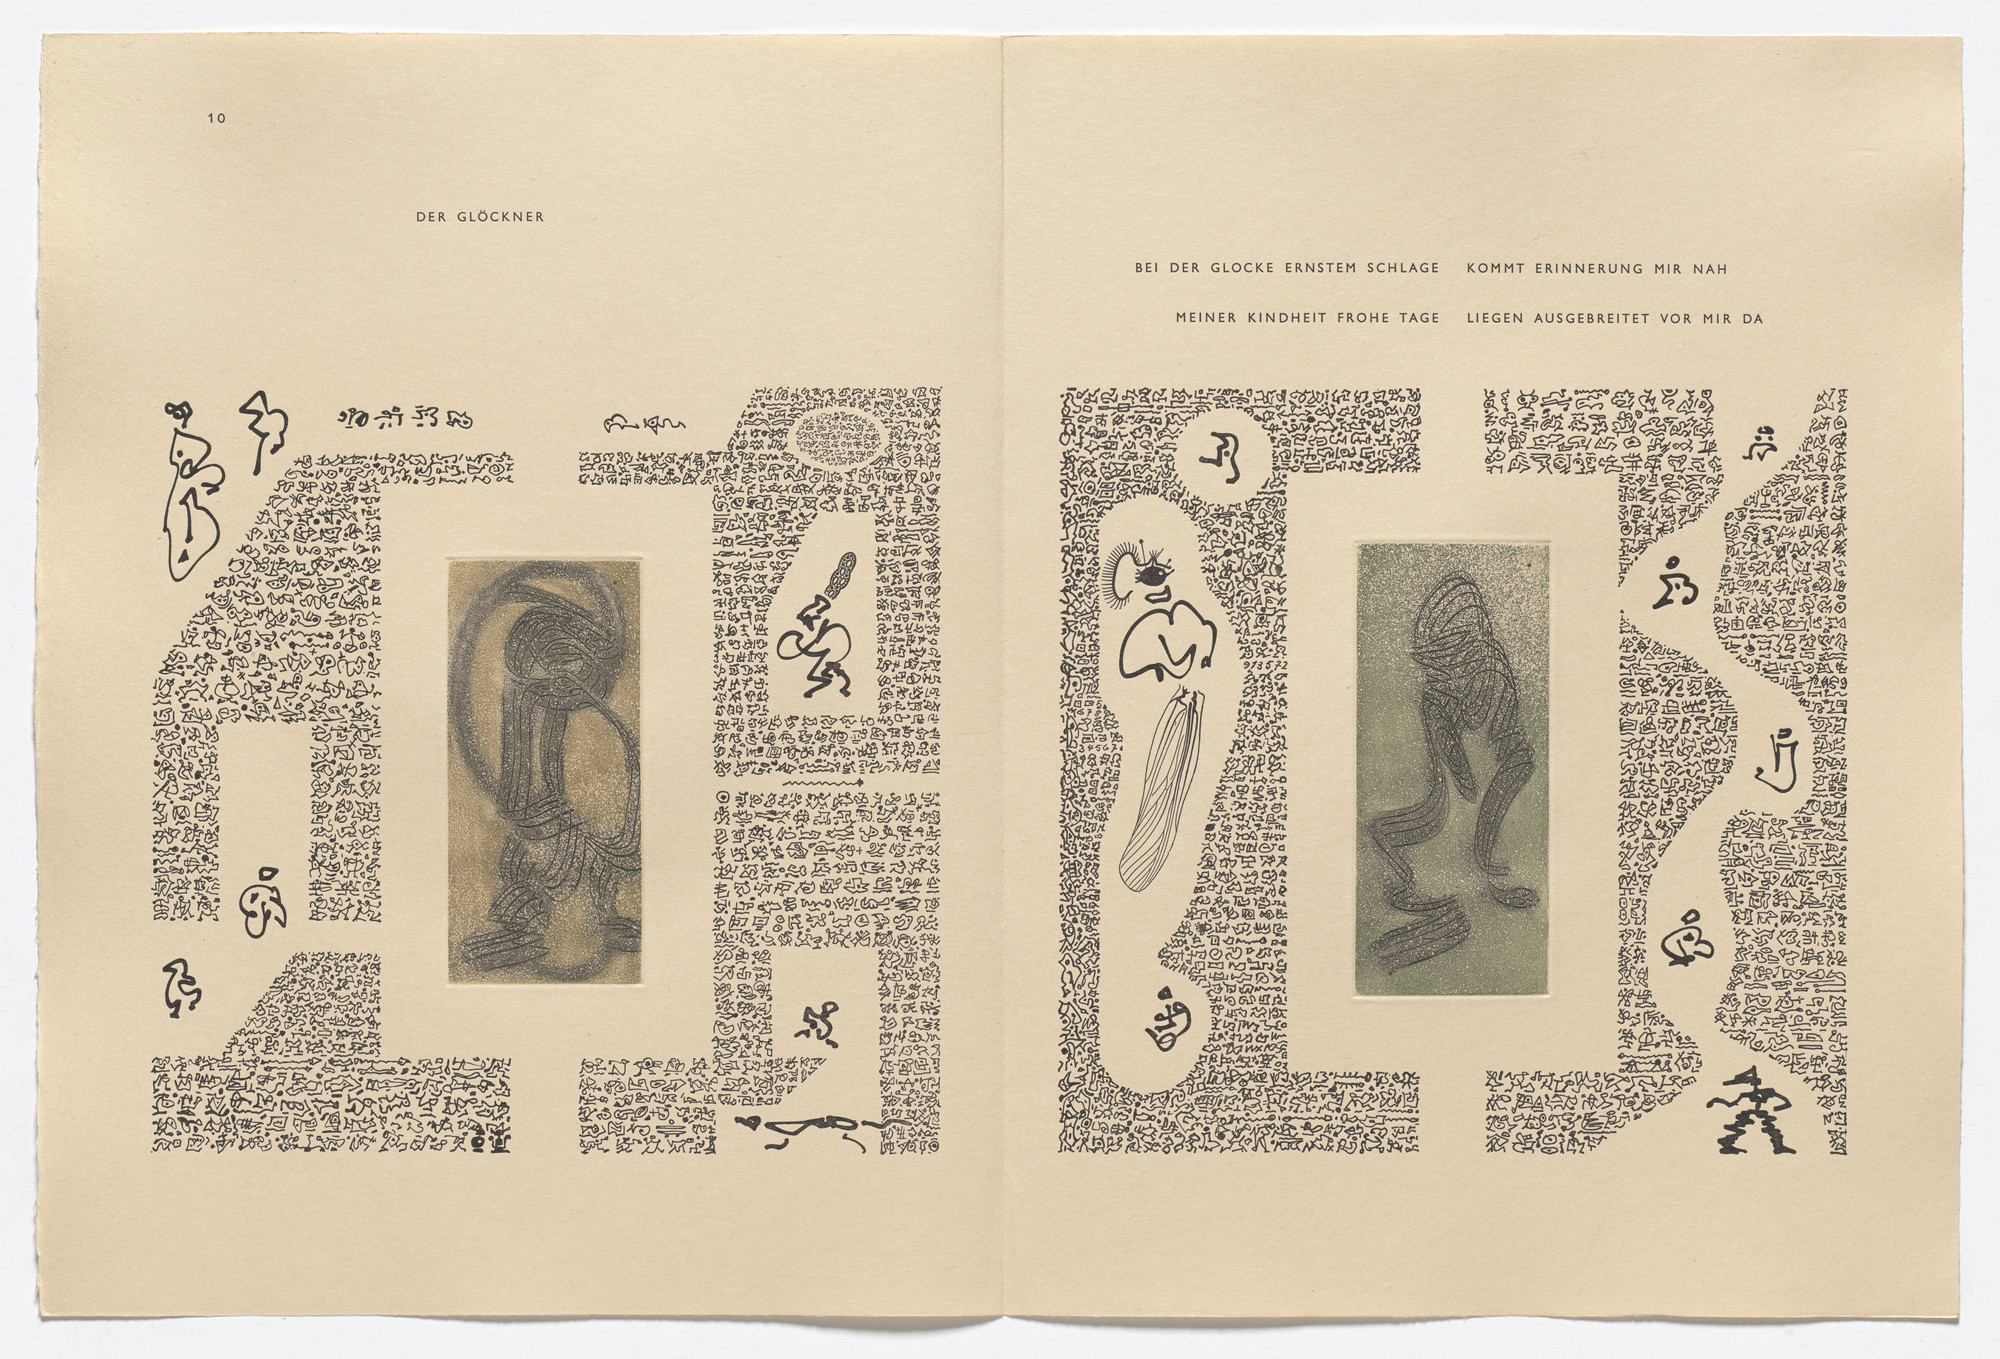 Max Ernst. In-text plates (page 10) from 65 Maximiliana ou l'exercice illégal de l'astronomie. 1964